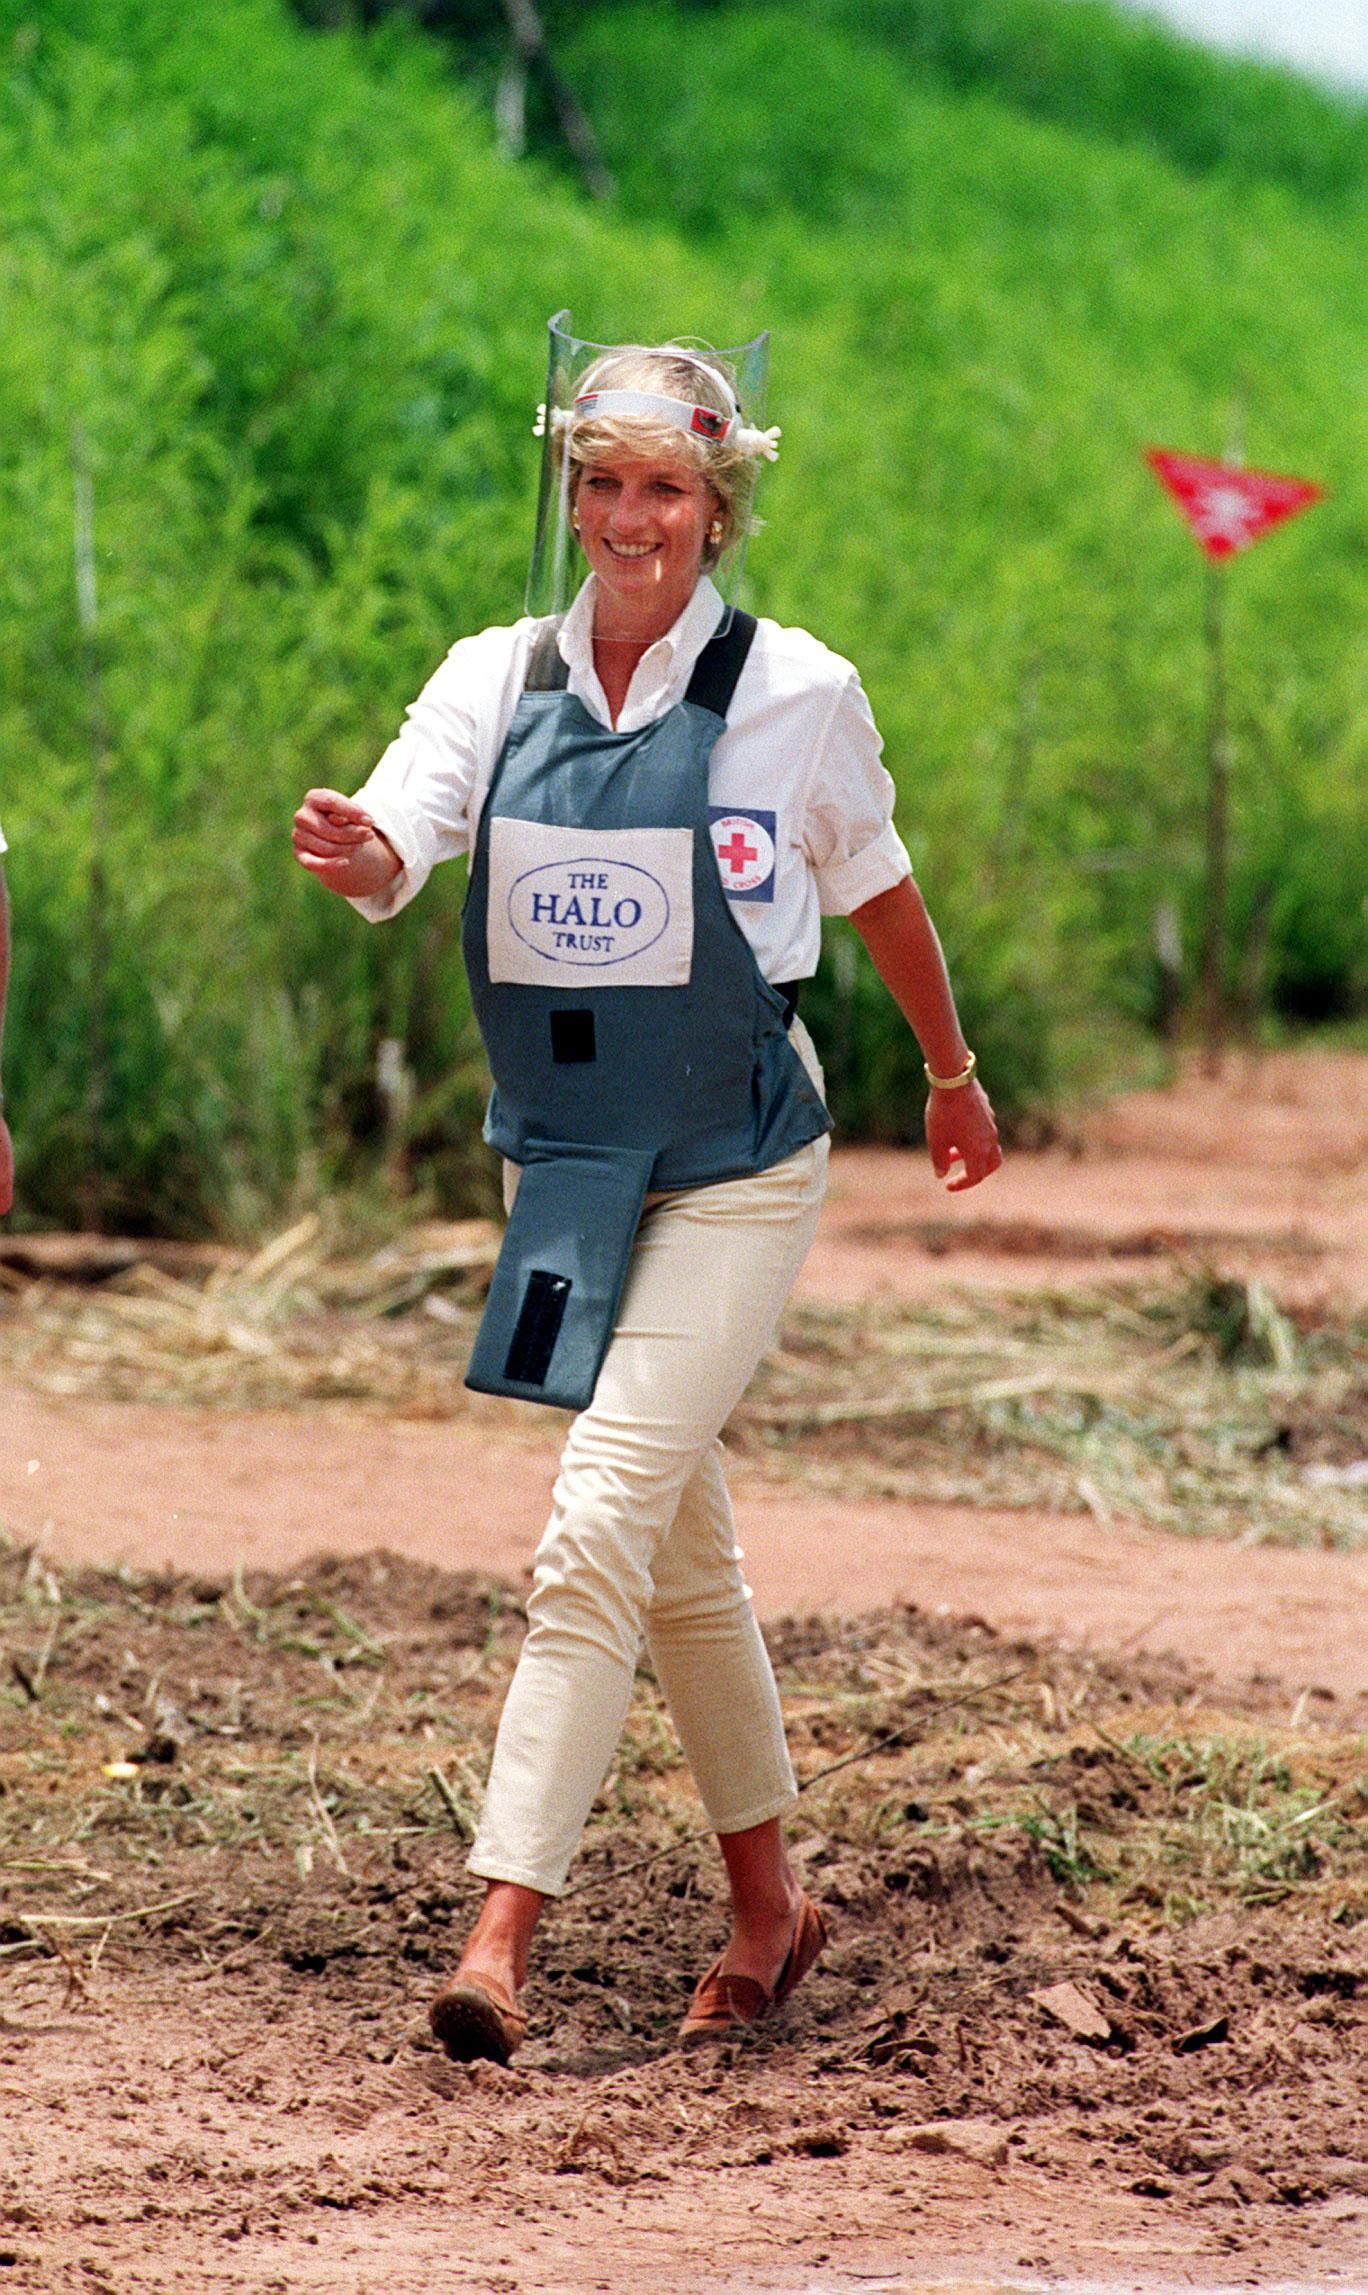 Another image showing Diana, Princess of Wales' iconic walk through a minefield in Angola in January 1997 [Photo: Getty]